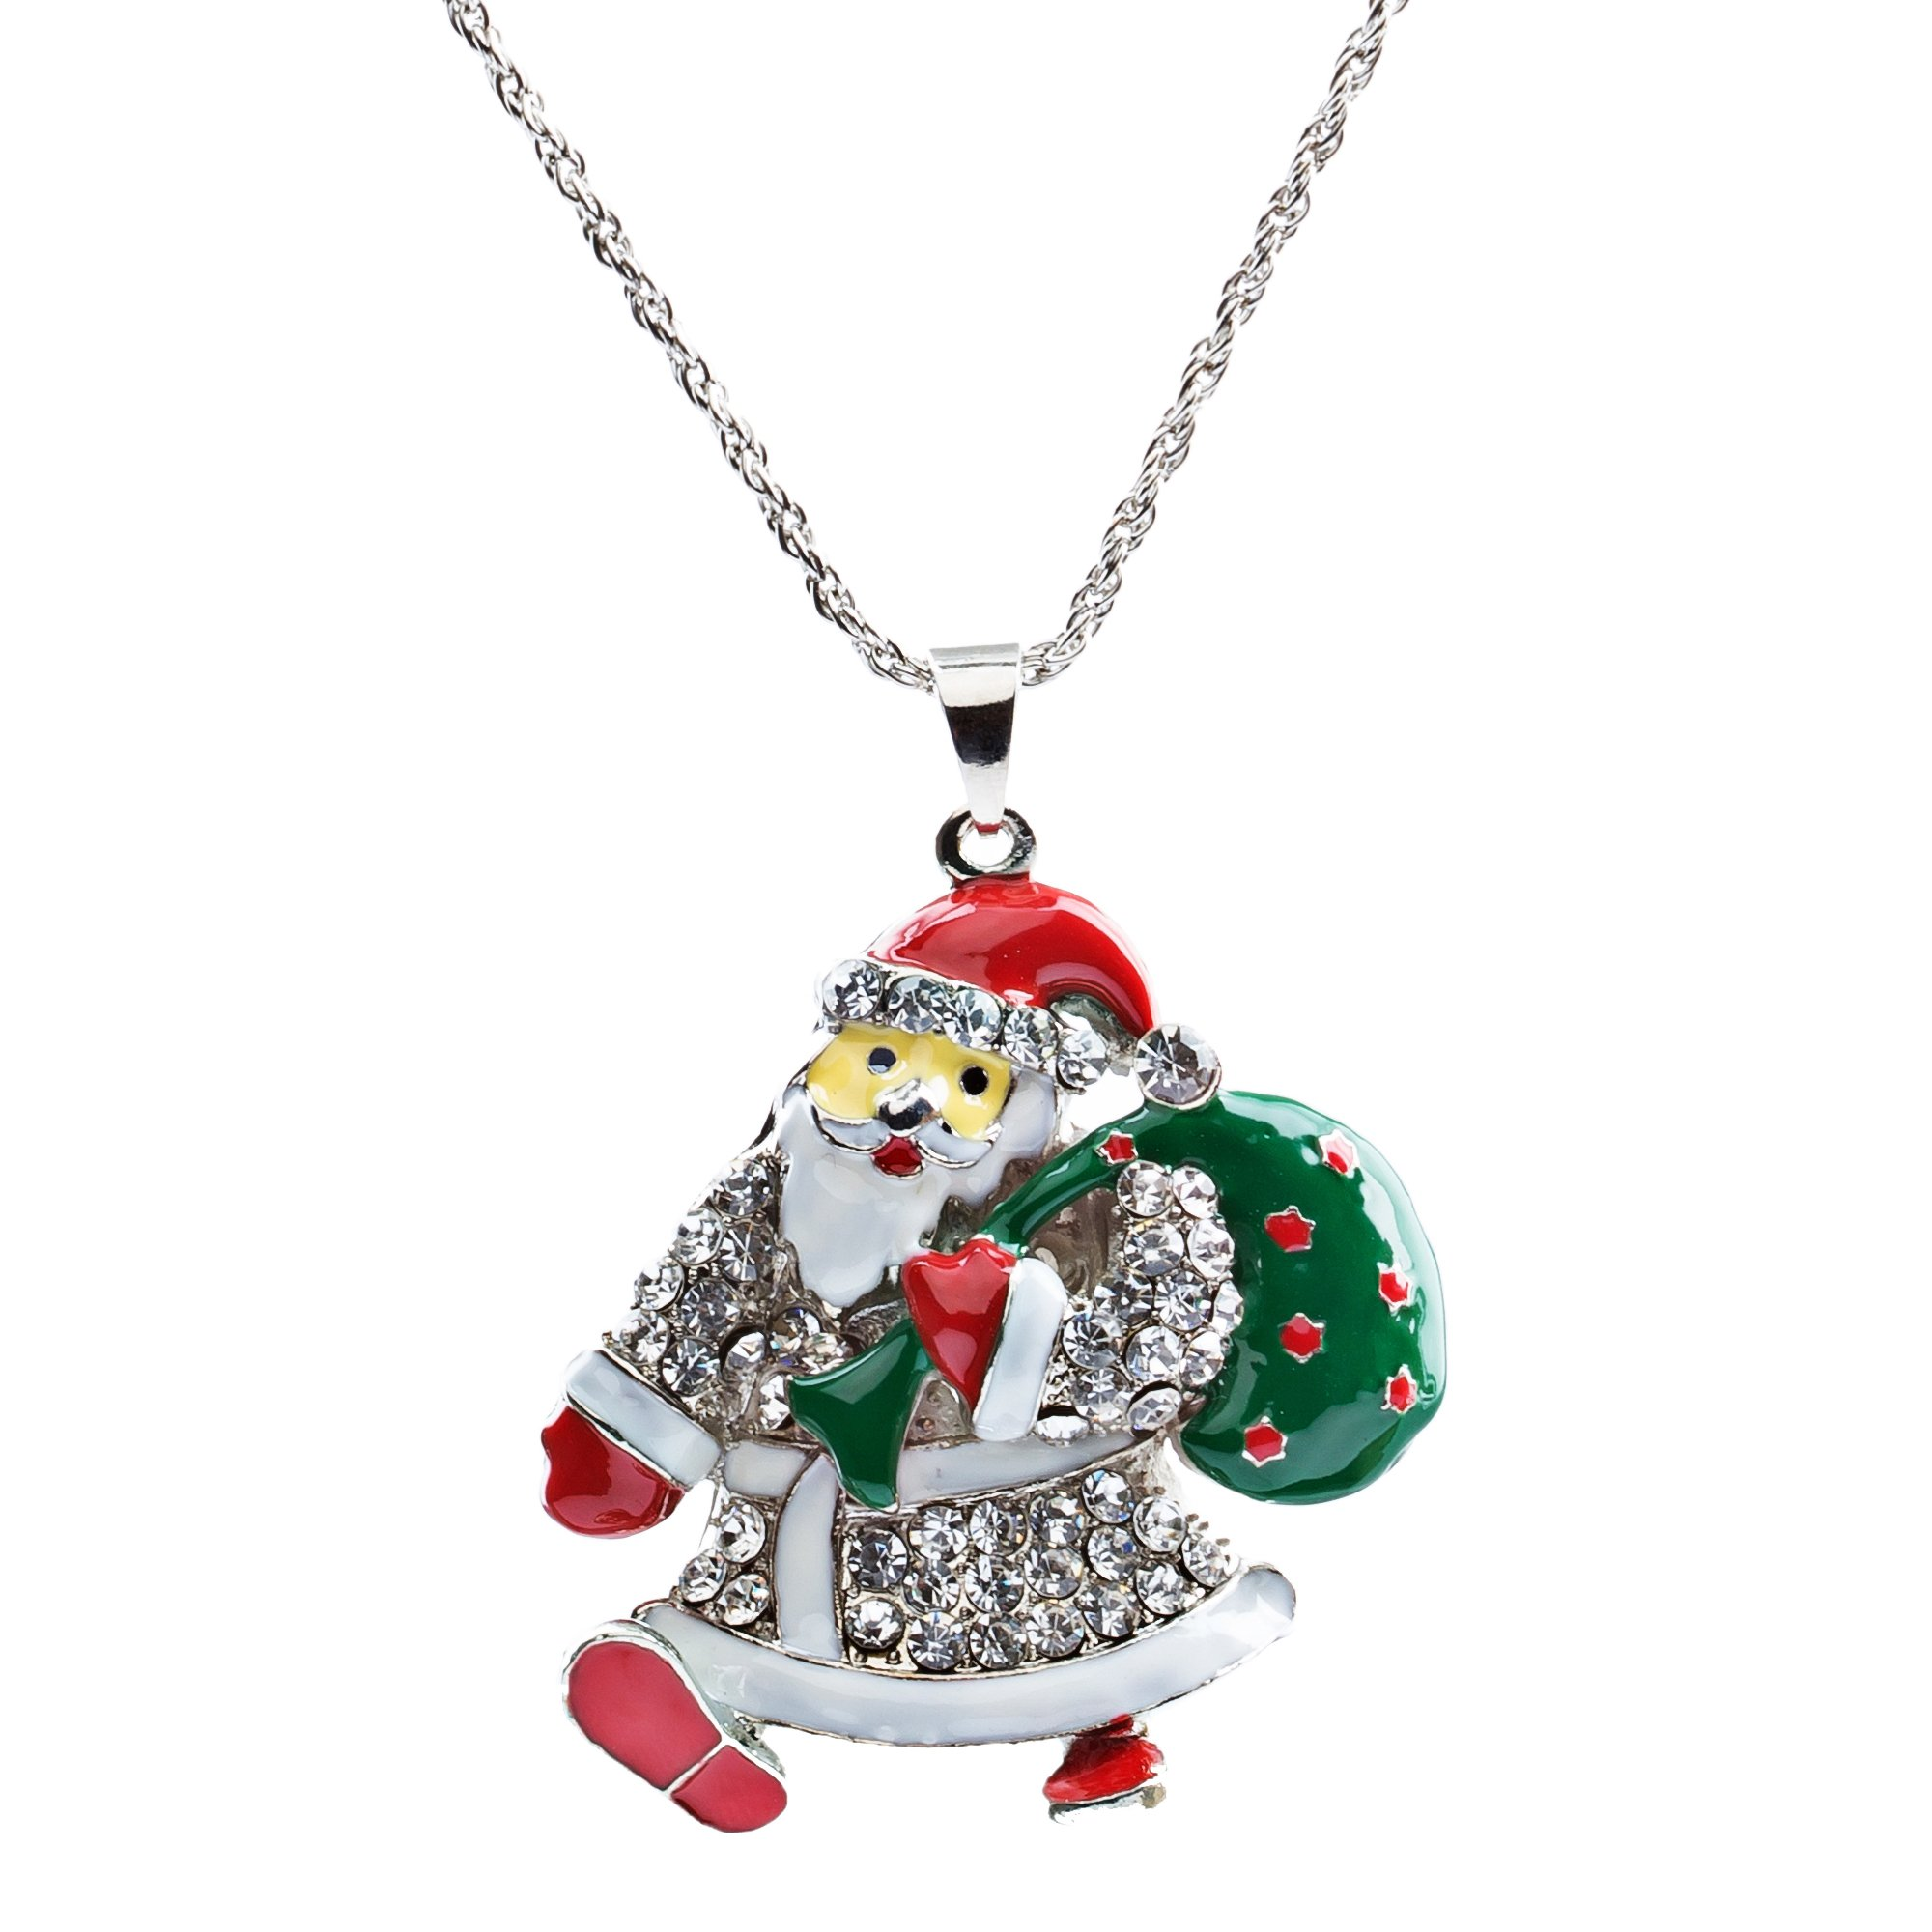 Christmas Jewelry Happy Holidays Crystal Santa Claus Gift Bag Long Necklace